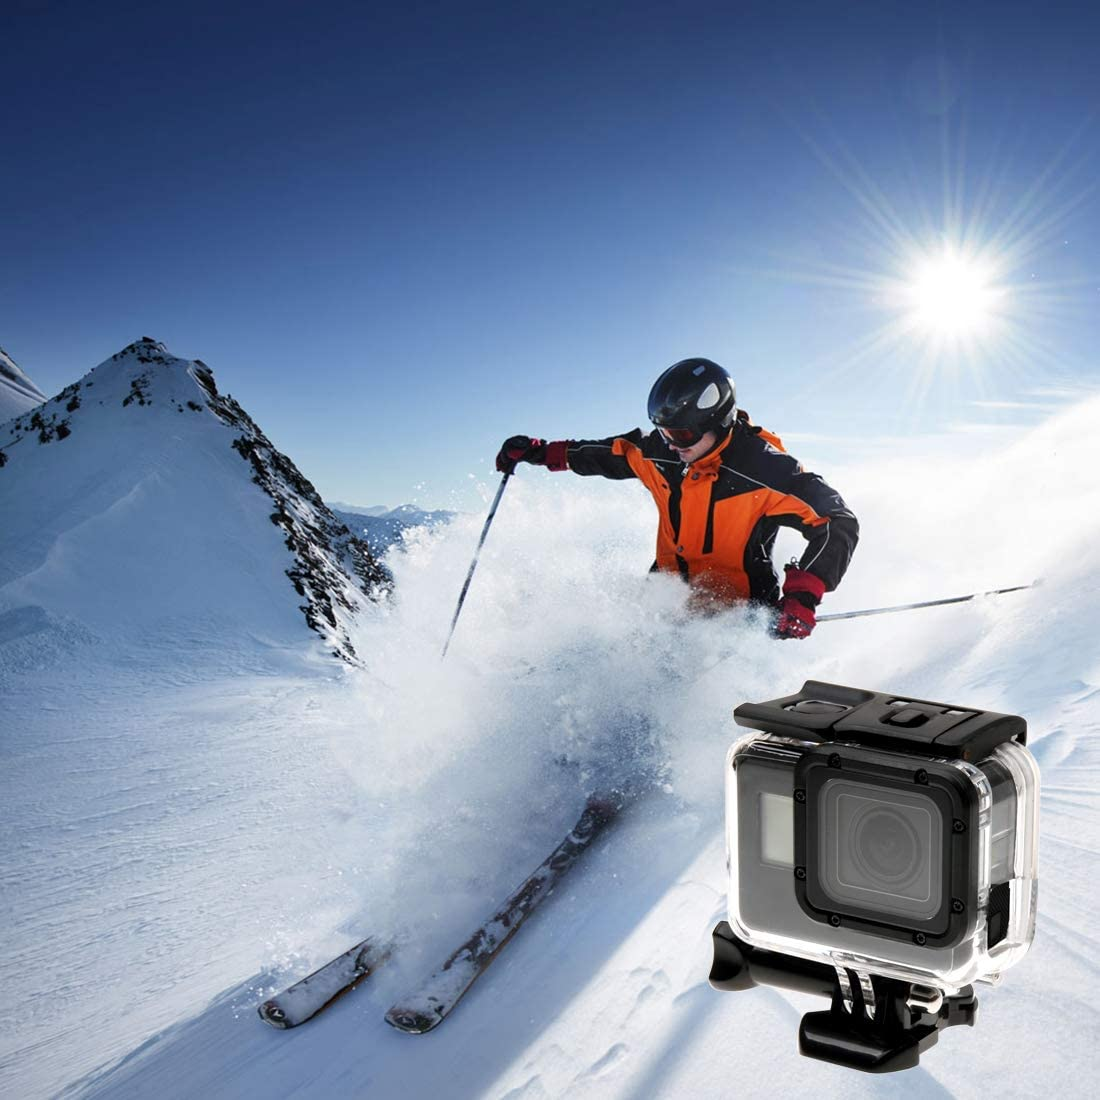 No Need to Disassemble Lens CHENYANTUB Camera Accessories for GoPro New Hero //HERO6 //5 Skeleton Housing Protective Case Hollow Back Cover with Buckle Basic Mount /& Screw